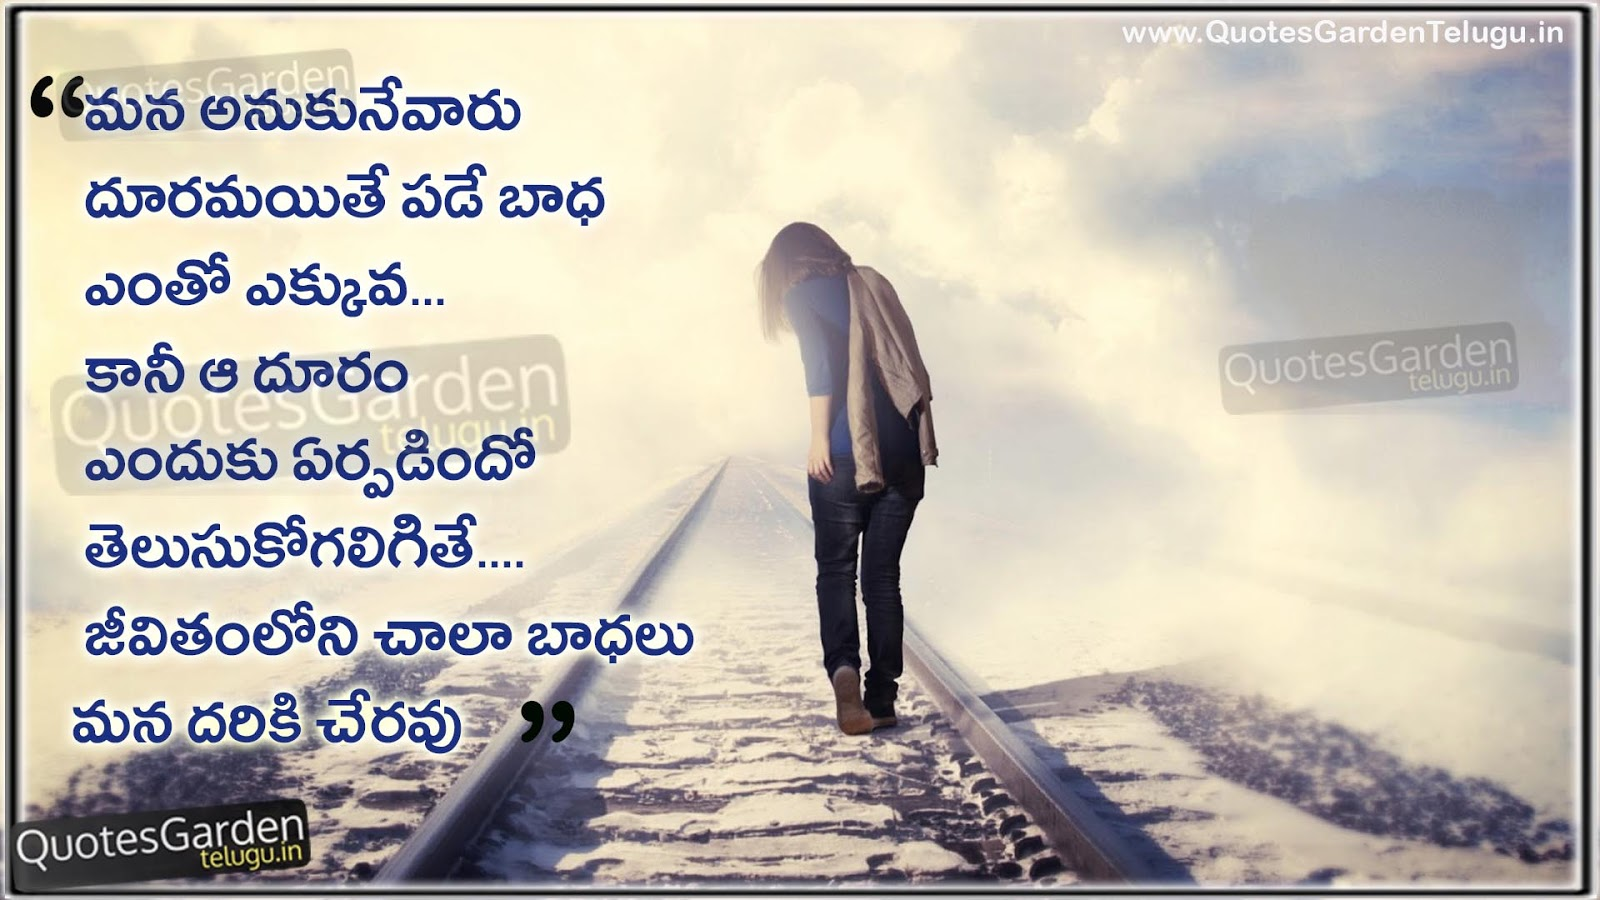 heart touching telugu love stories 5 quotes garden